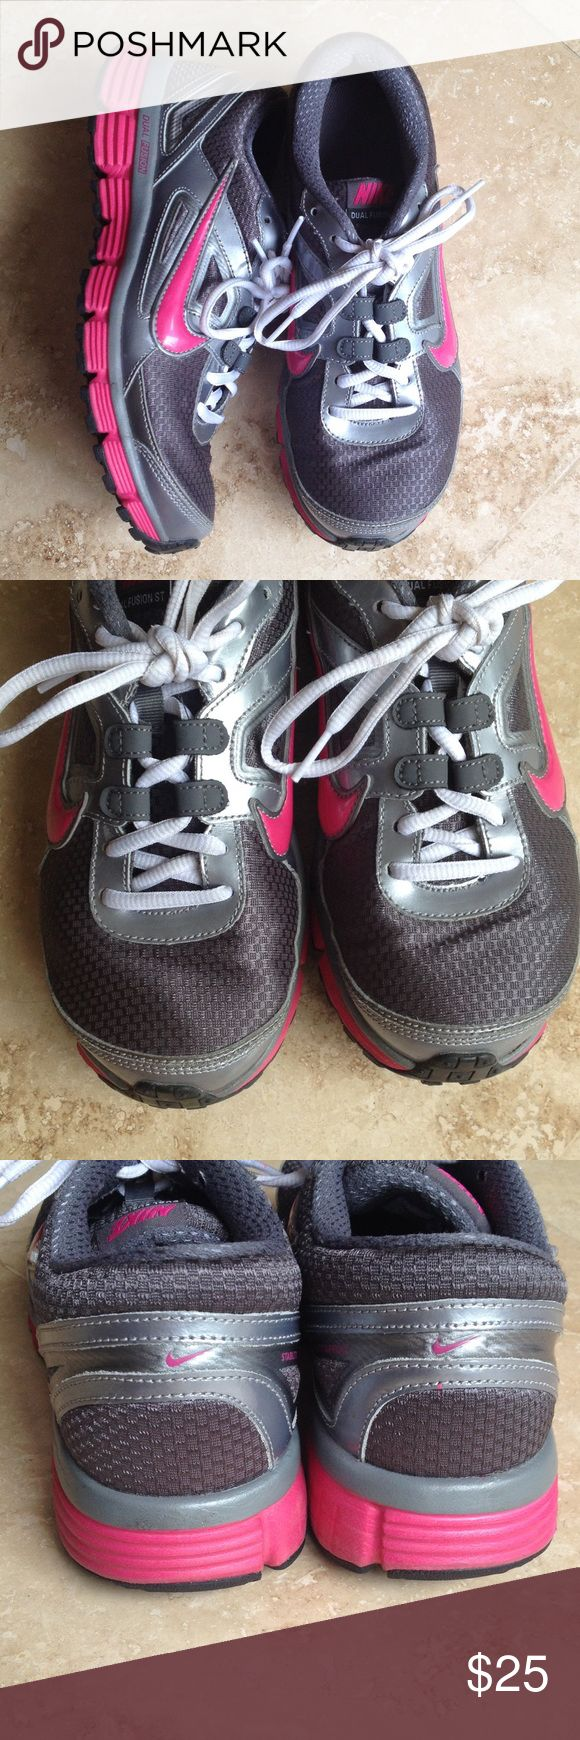 Nike Dual Fusion sneakers Worn once. In excellent condition. Nike Shoes Sneakers